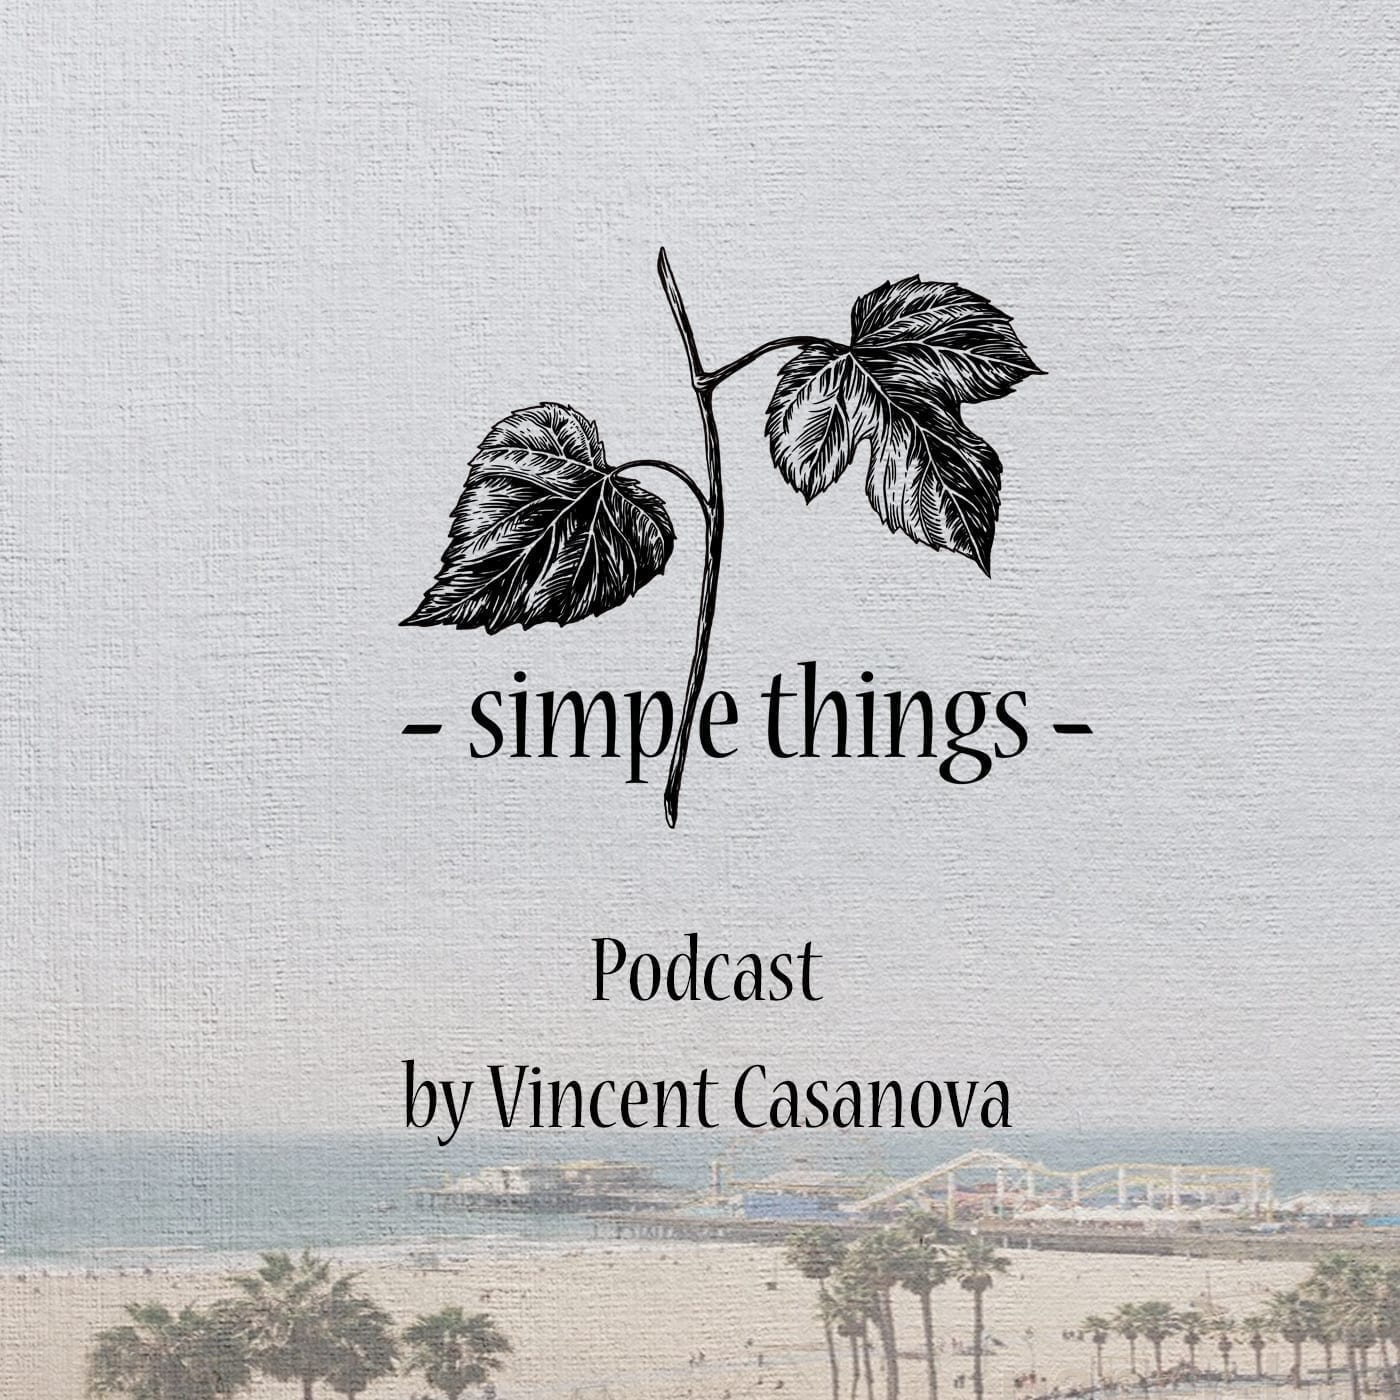 Simple Things Podcast by Vincent Casanova